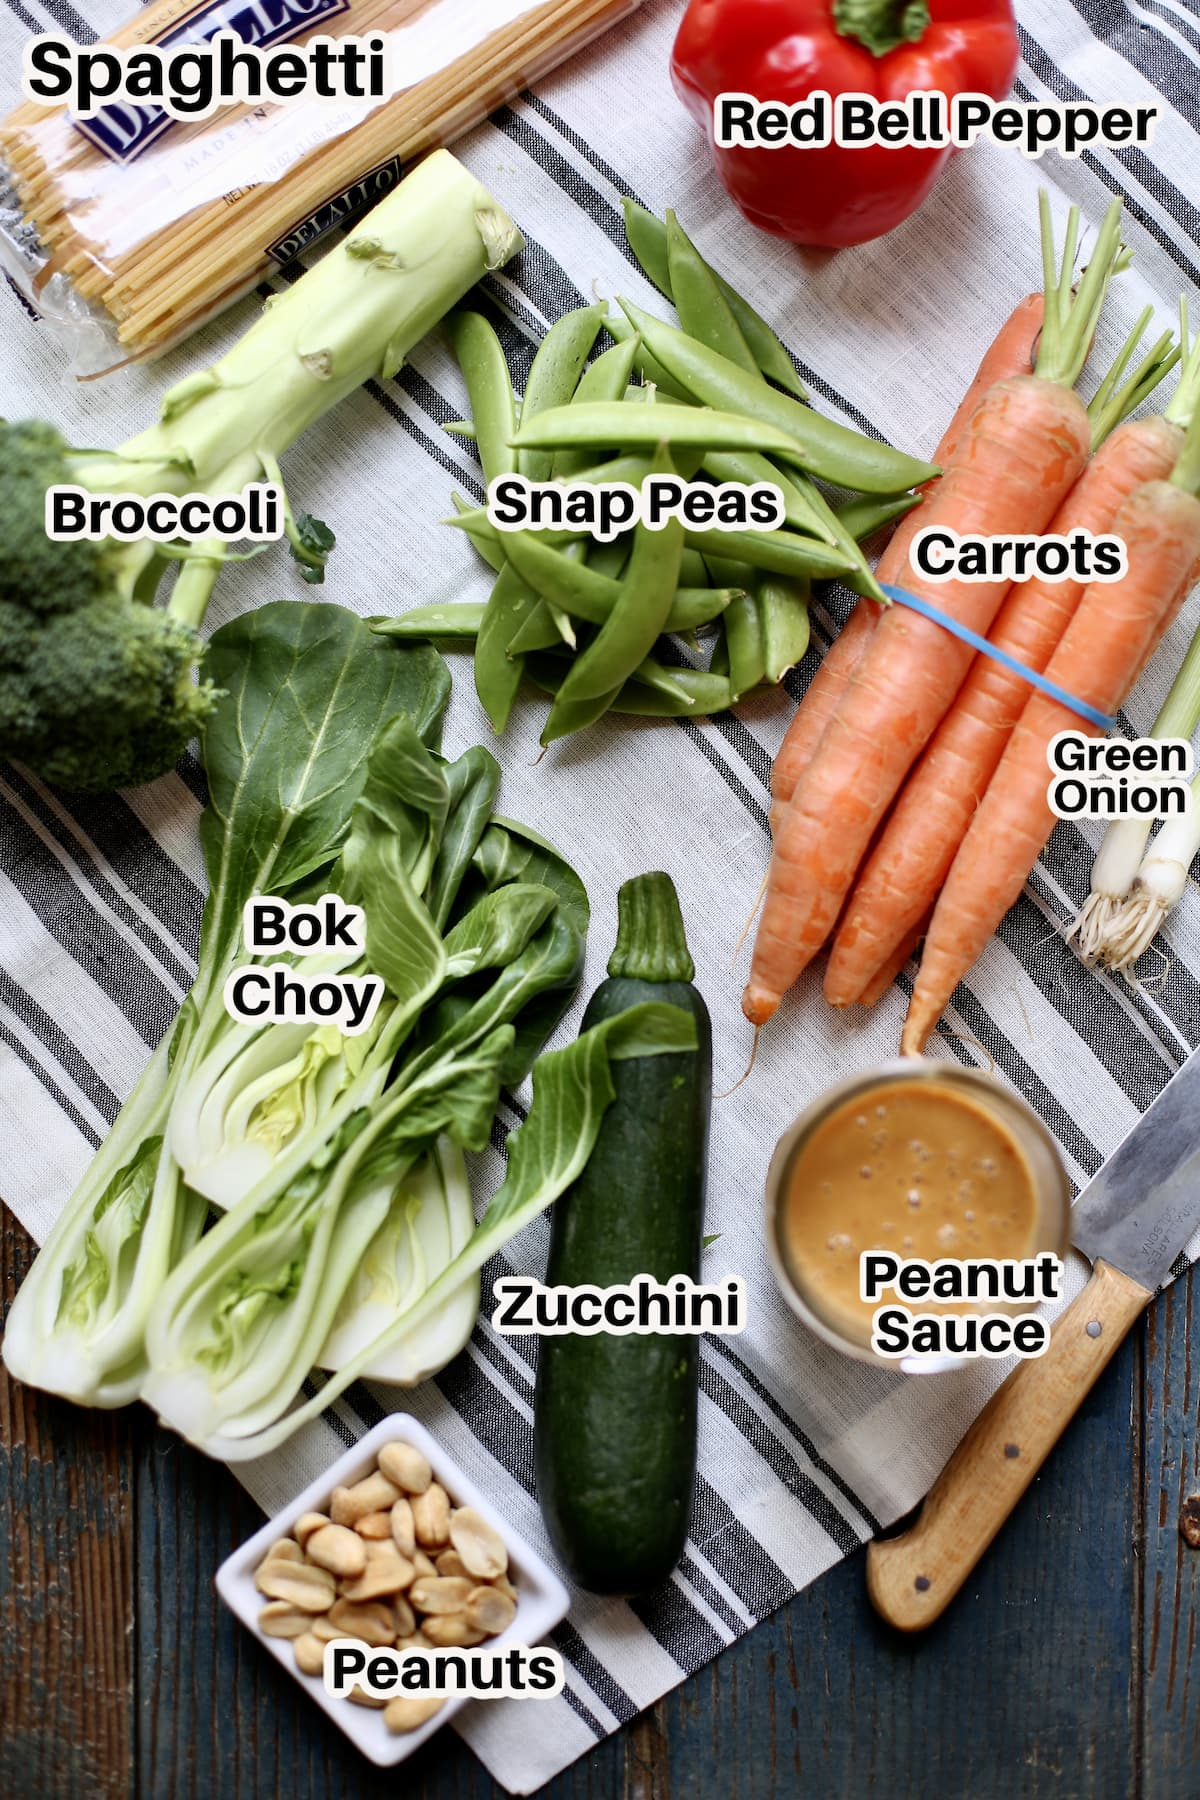 a table with striped cloth underneath with a text overlay saying the ingredients: snap peas, carrots, bok choy, zucchini, broccoli, peanut sauce green onion.